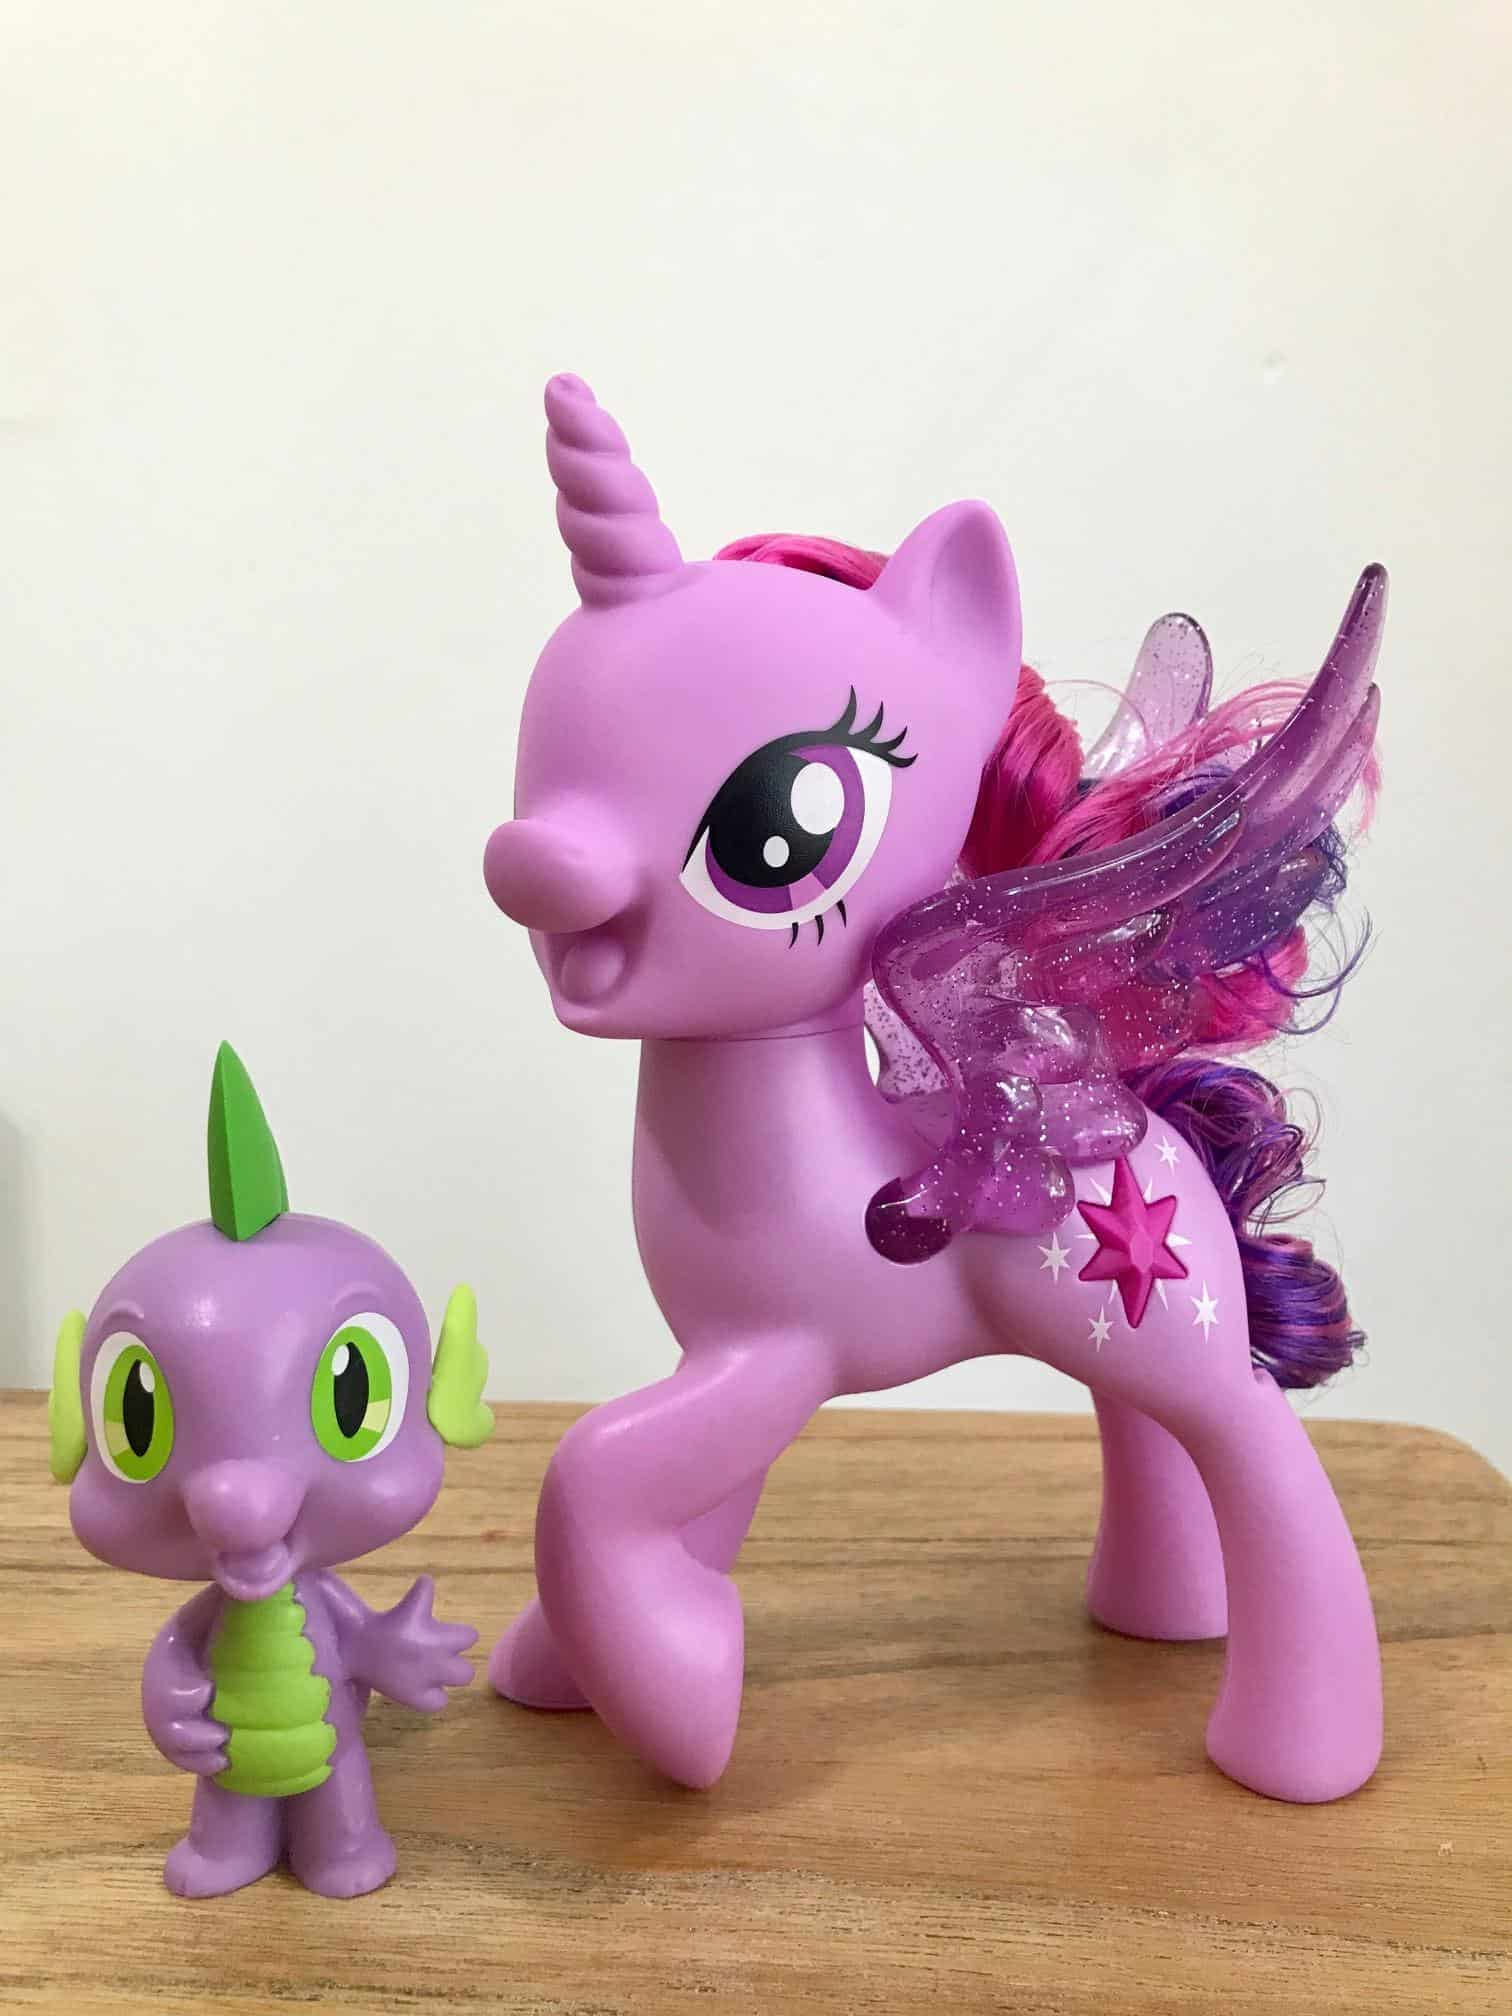 My Little Pony Toys : My little pony toys from the movie